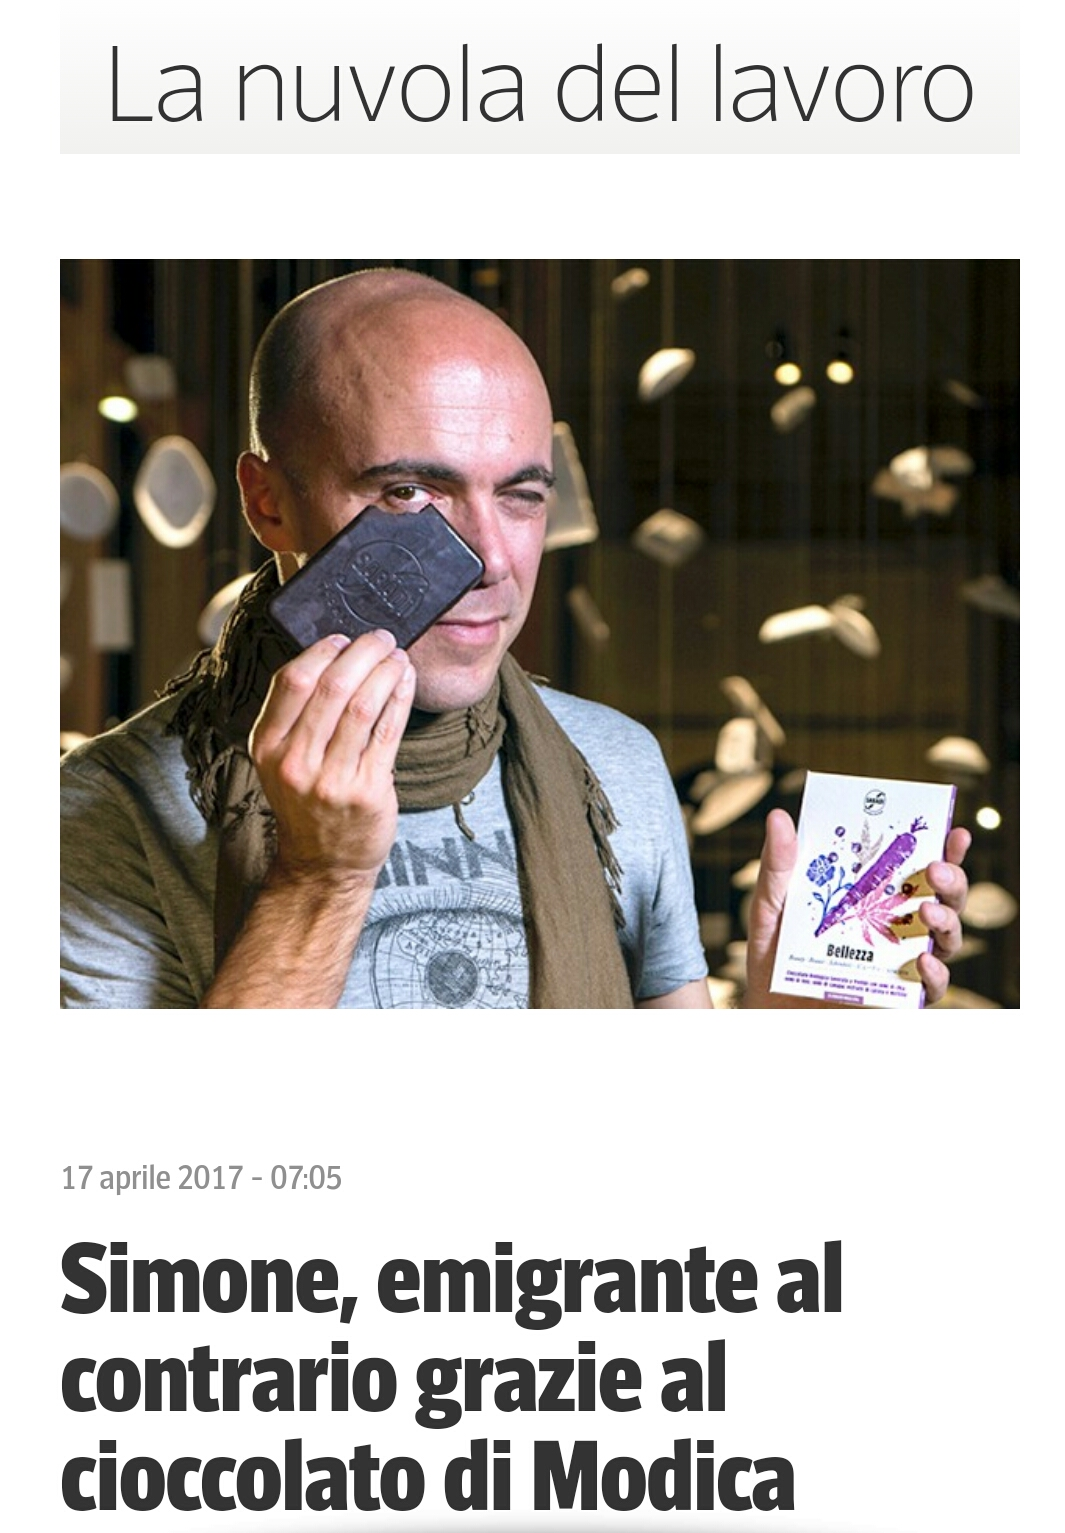 corriere.it - Simone emigrante al contrario